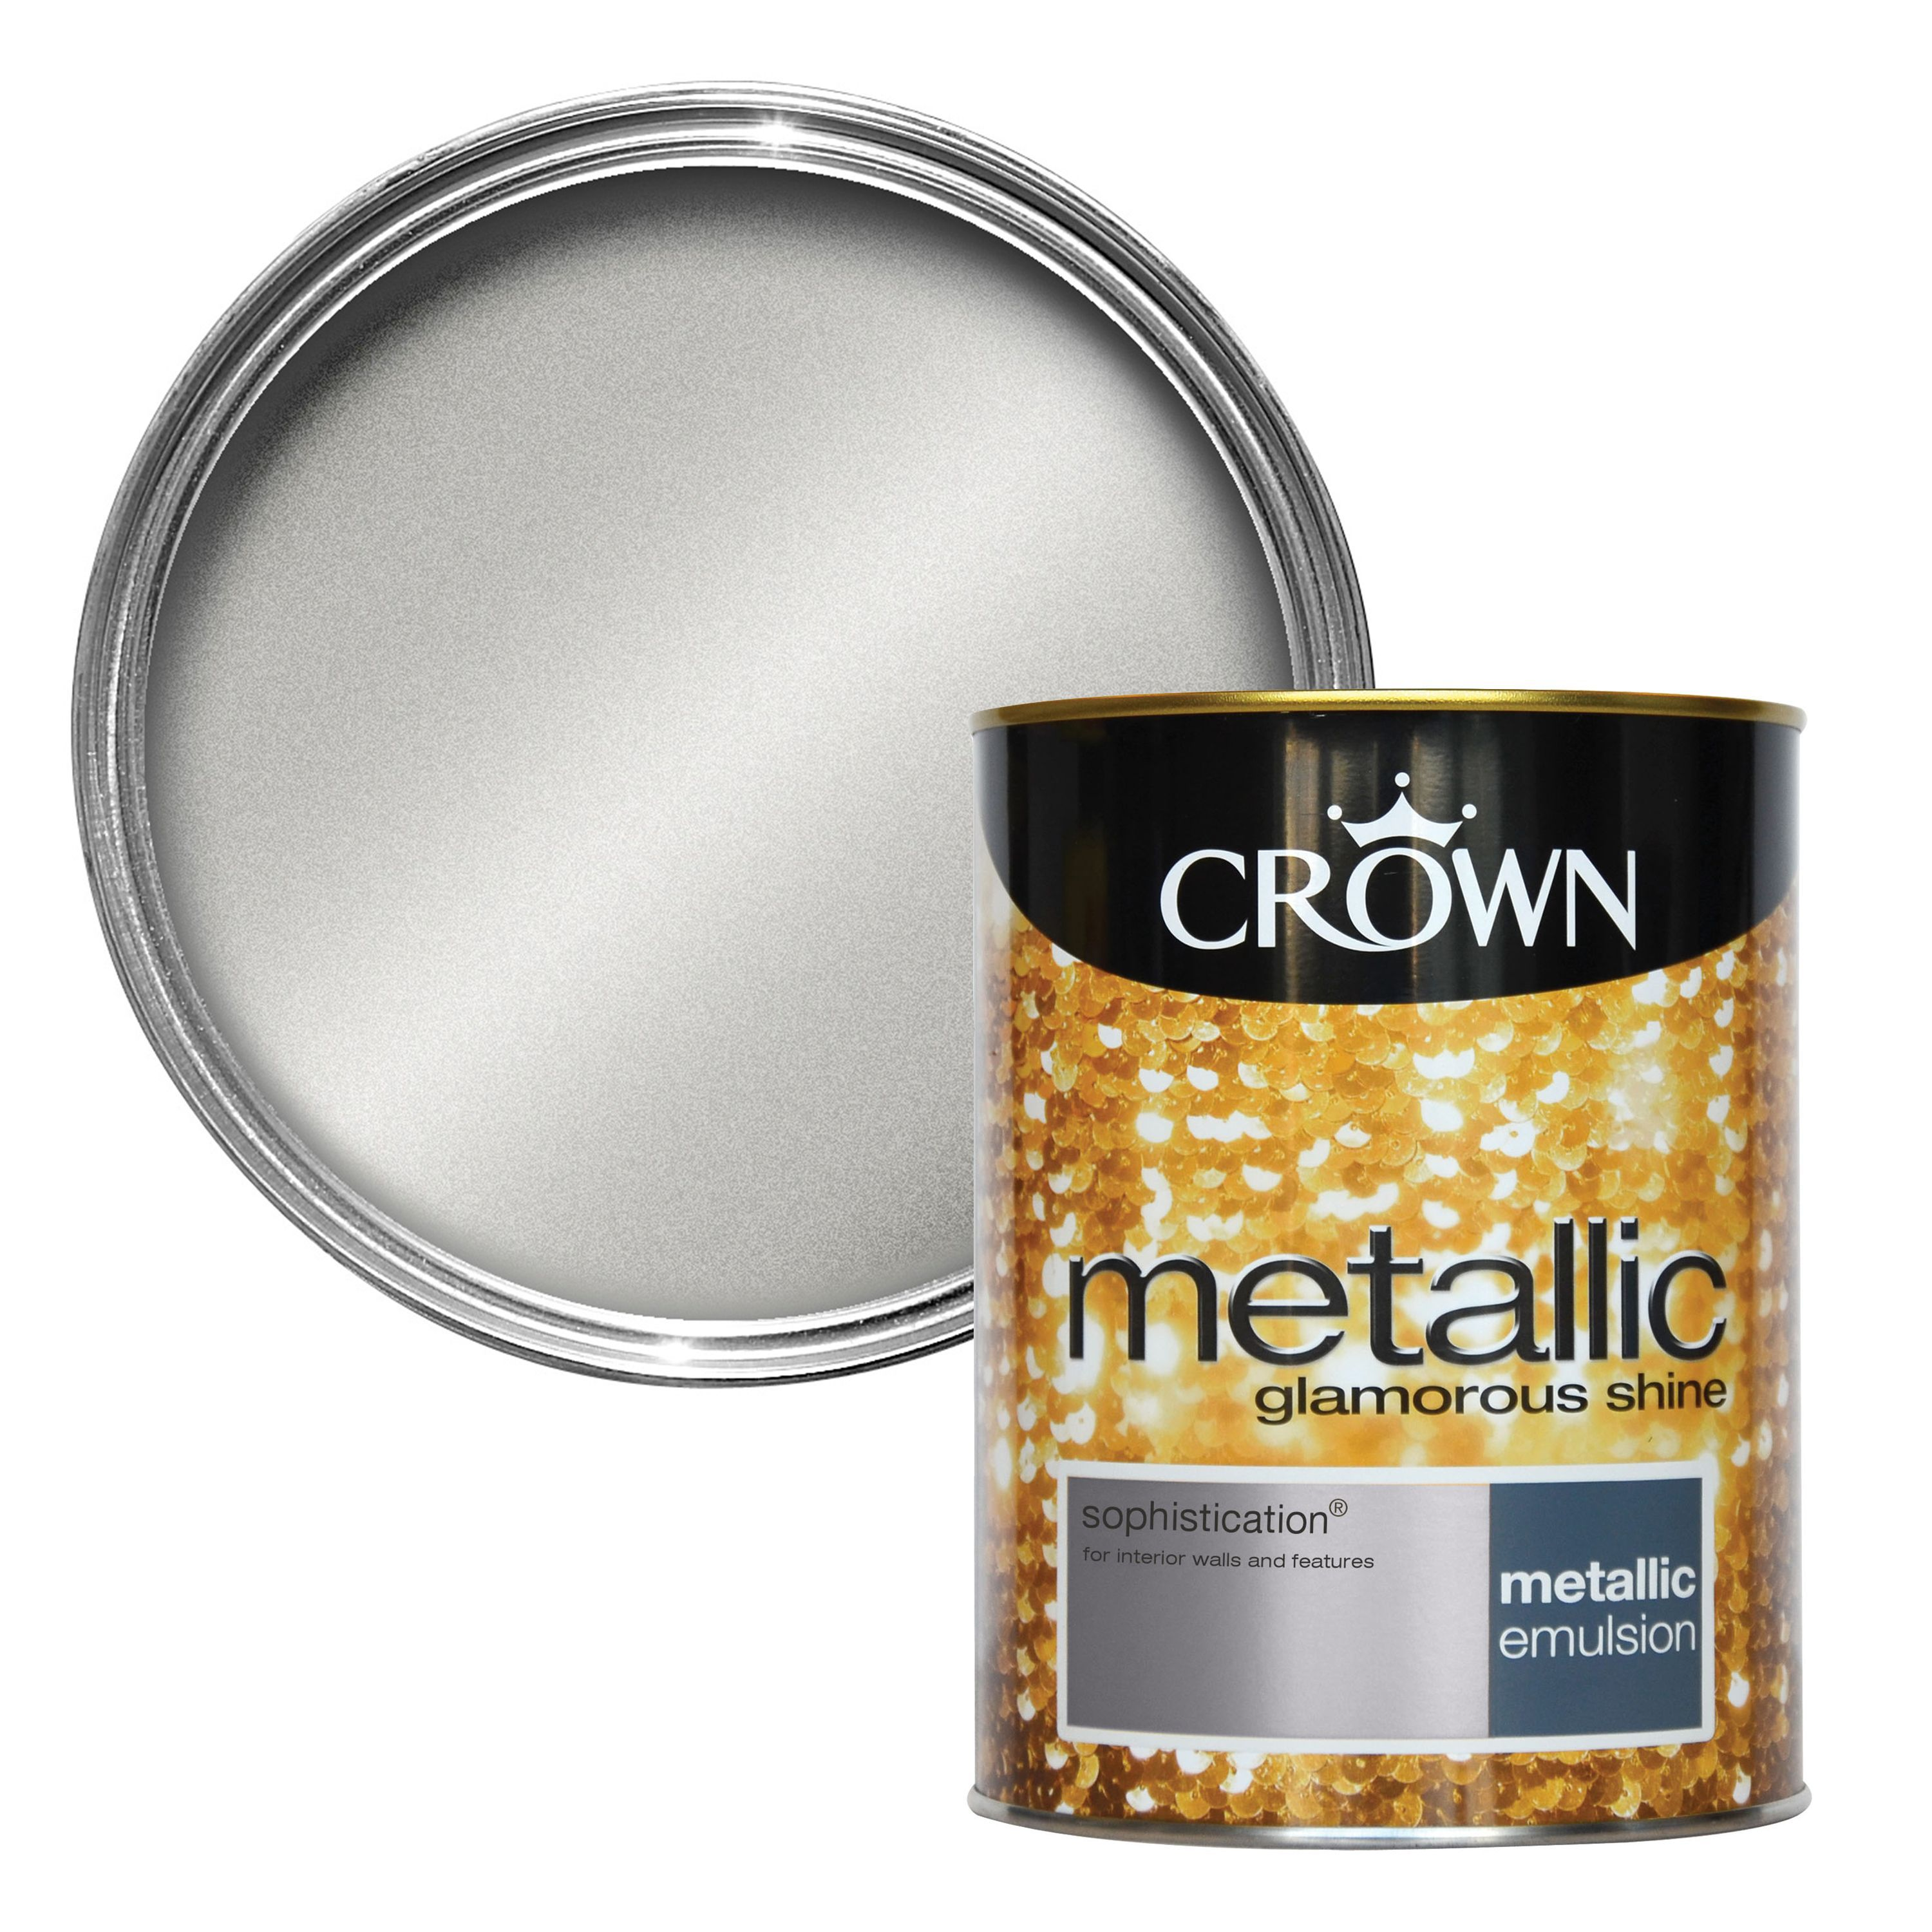 Crown Fashion For Walls Sophistication Metallic Emulsion Paint